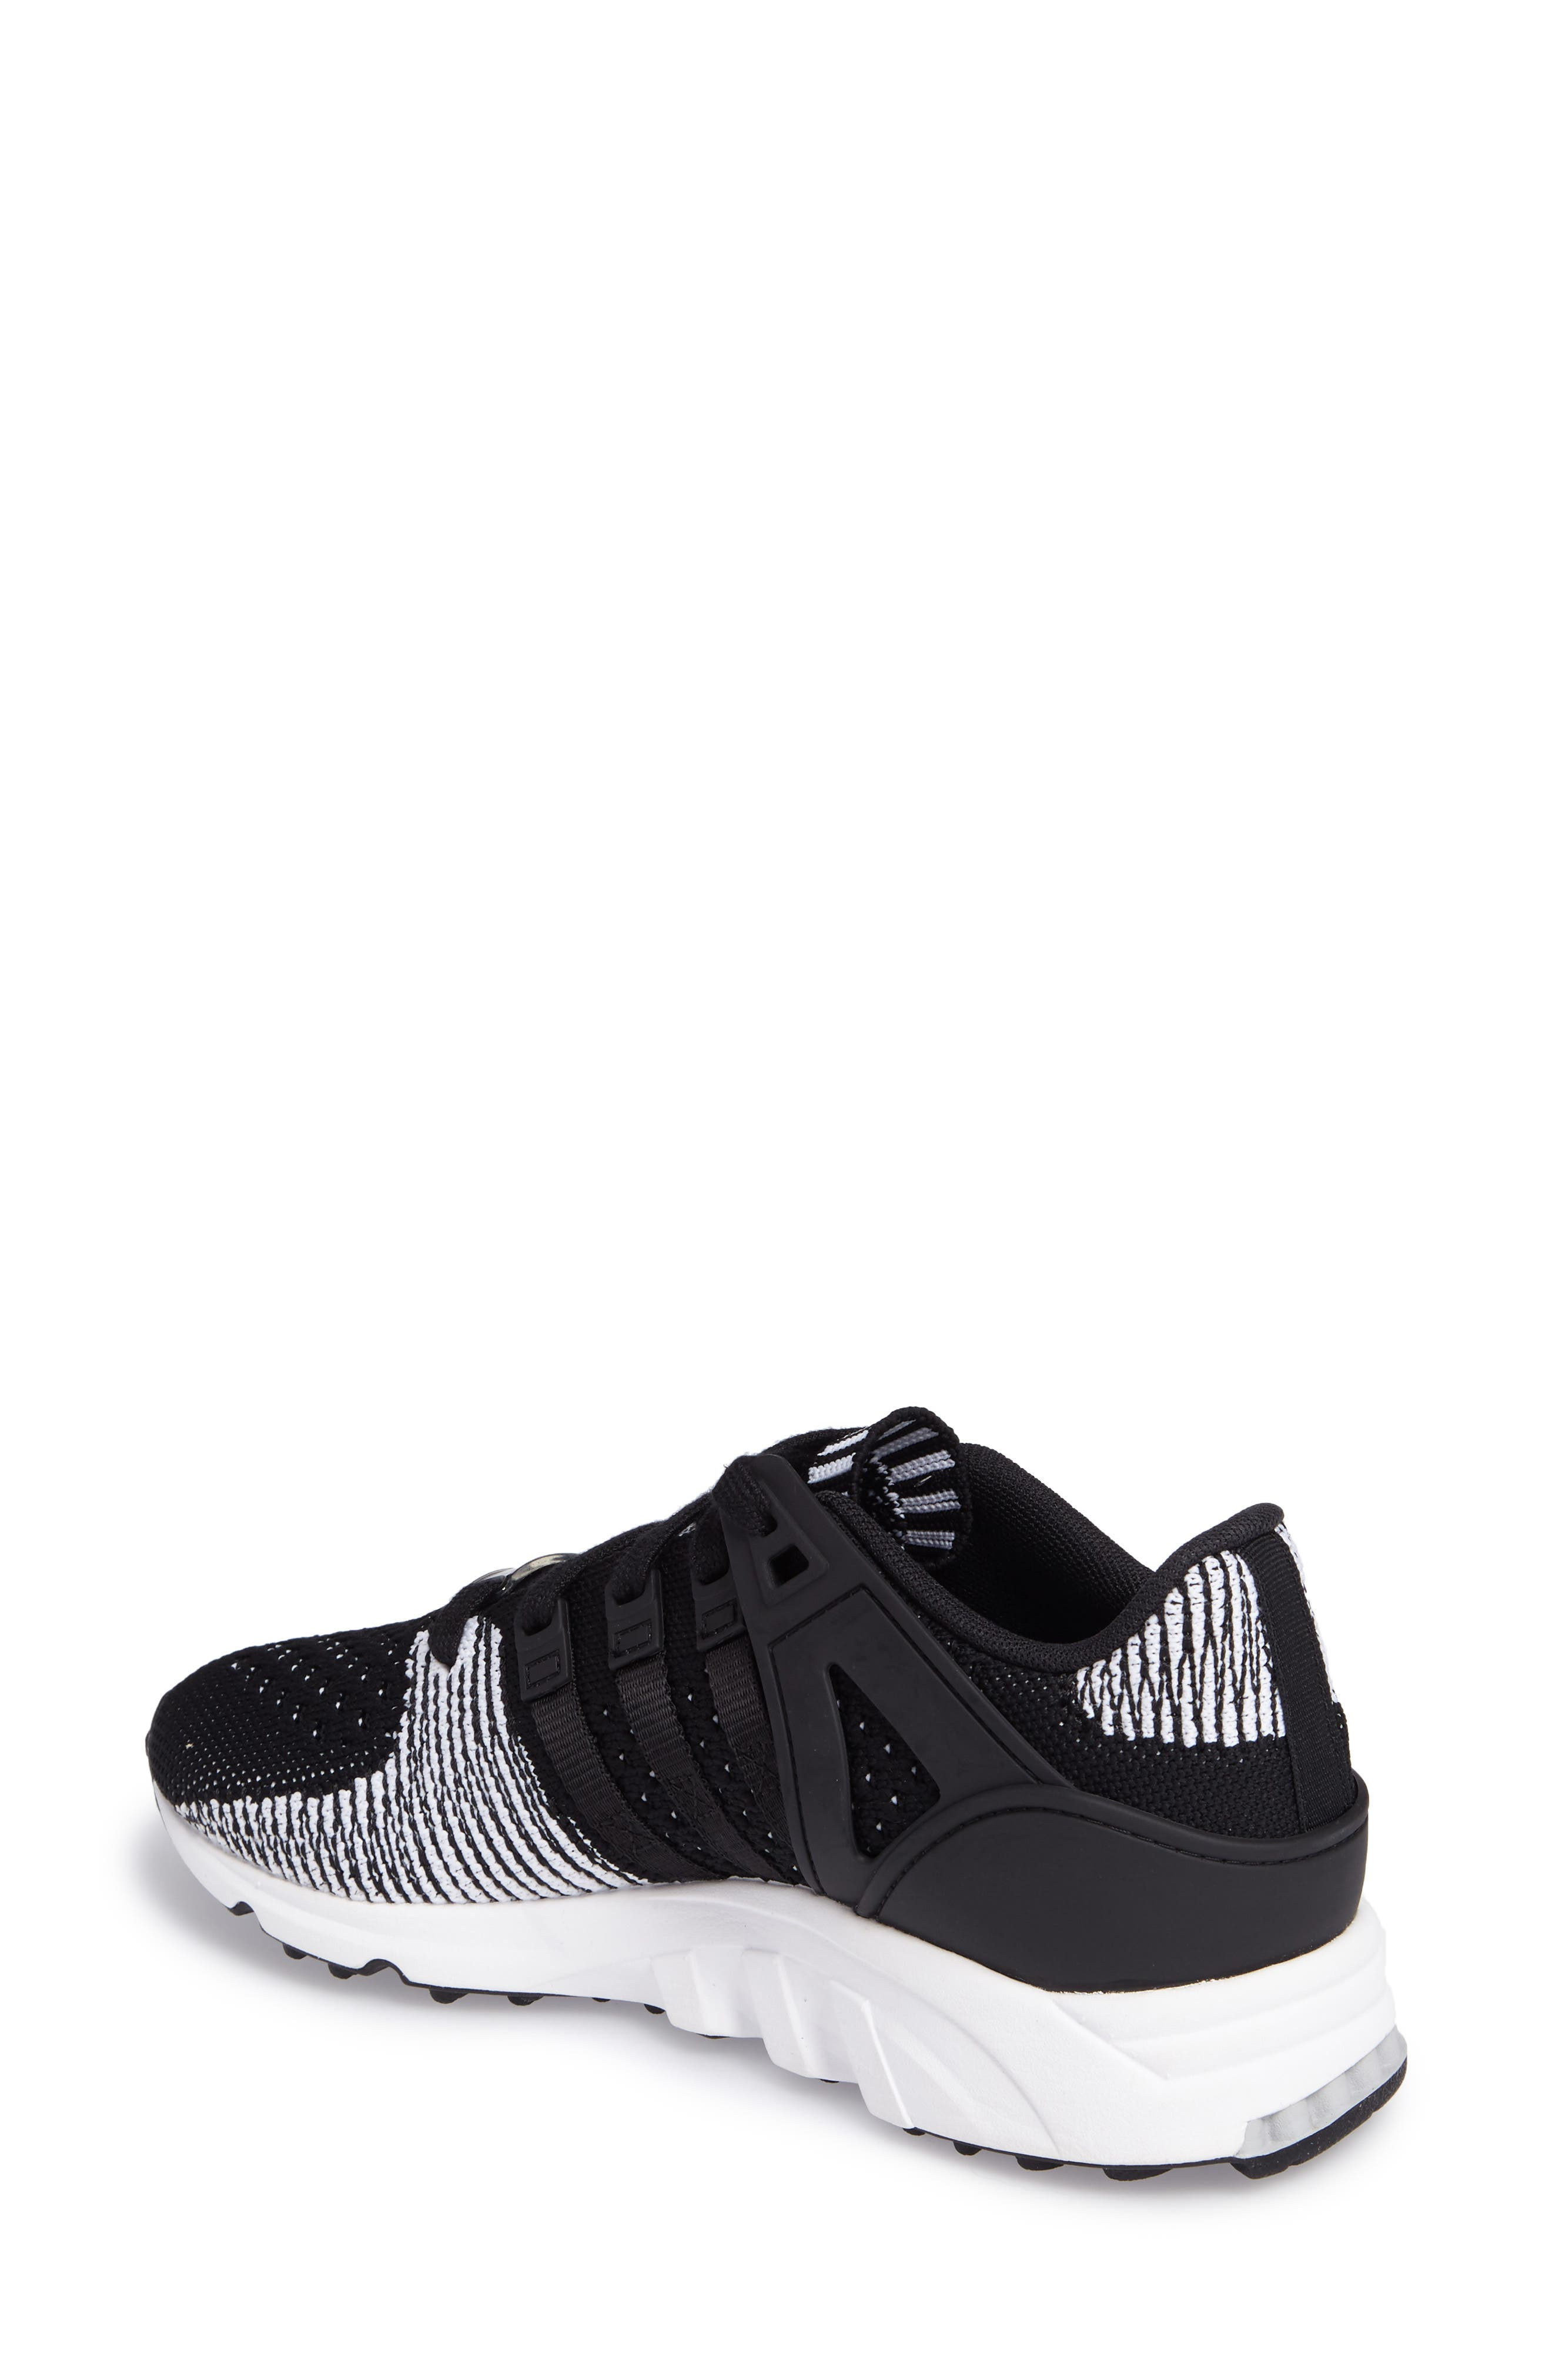 EQT Support RF PK Sneaker,                             Alternate thumbnail 2, color,                             001